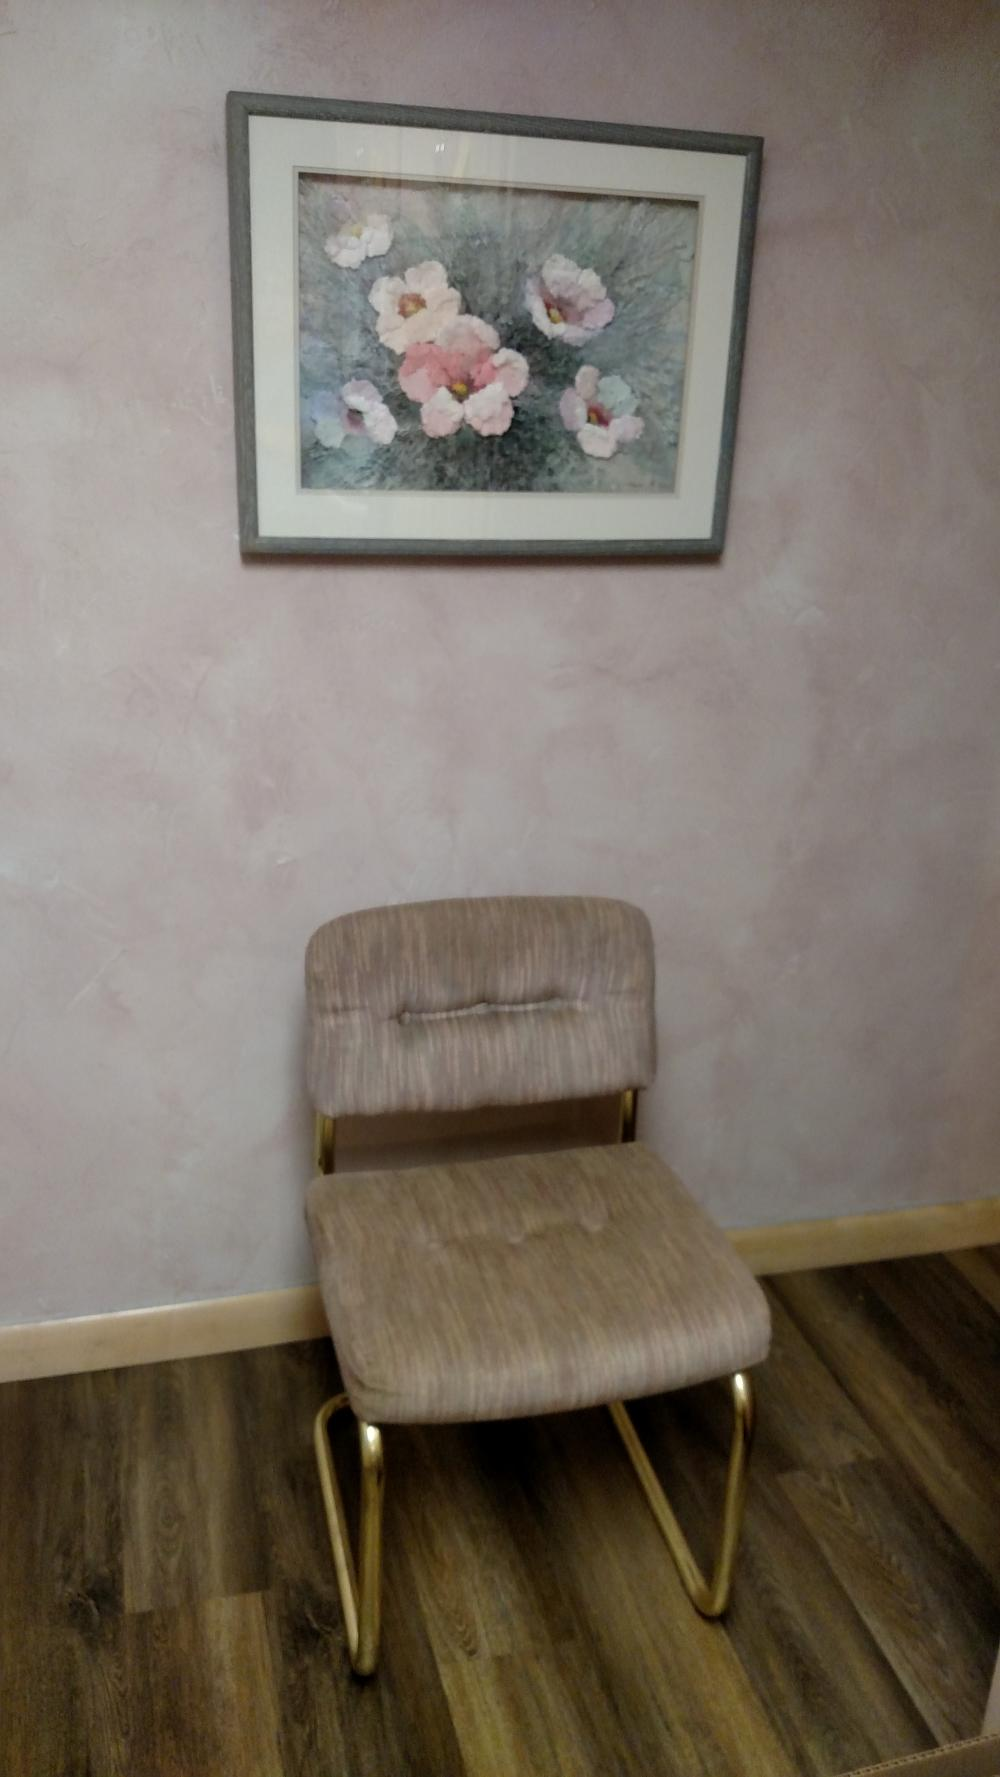 flower picture and padded chair